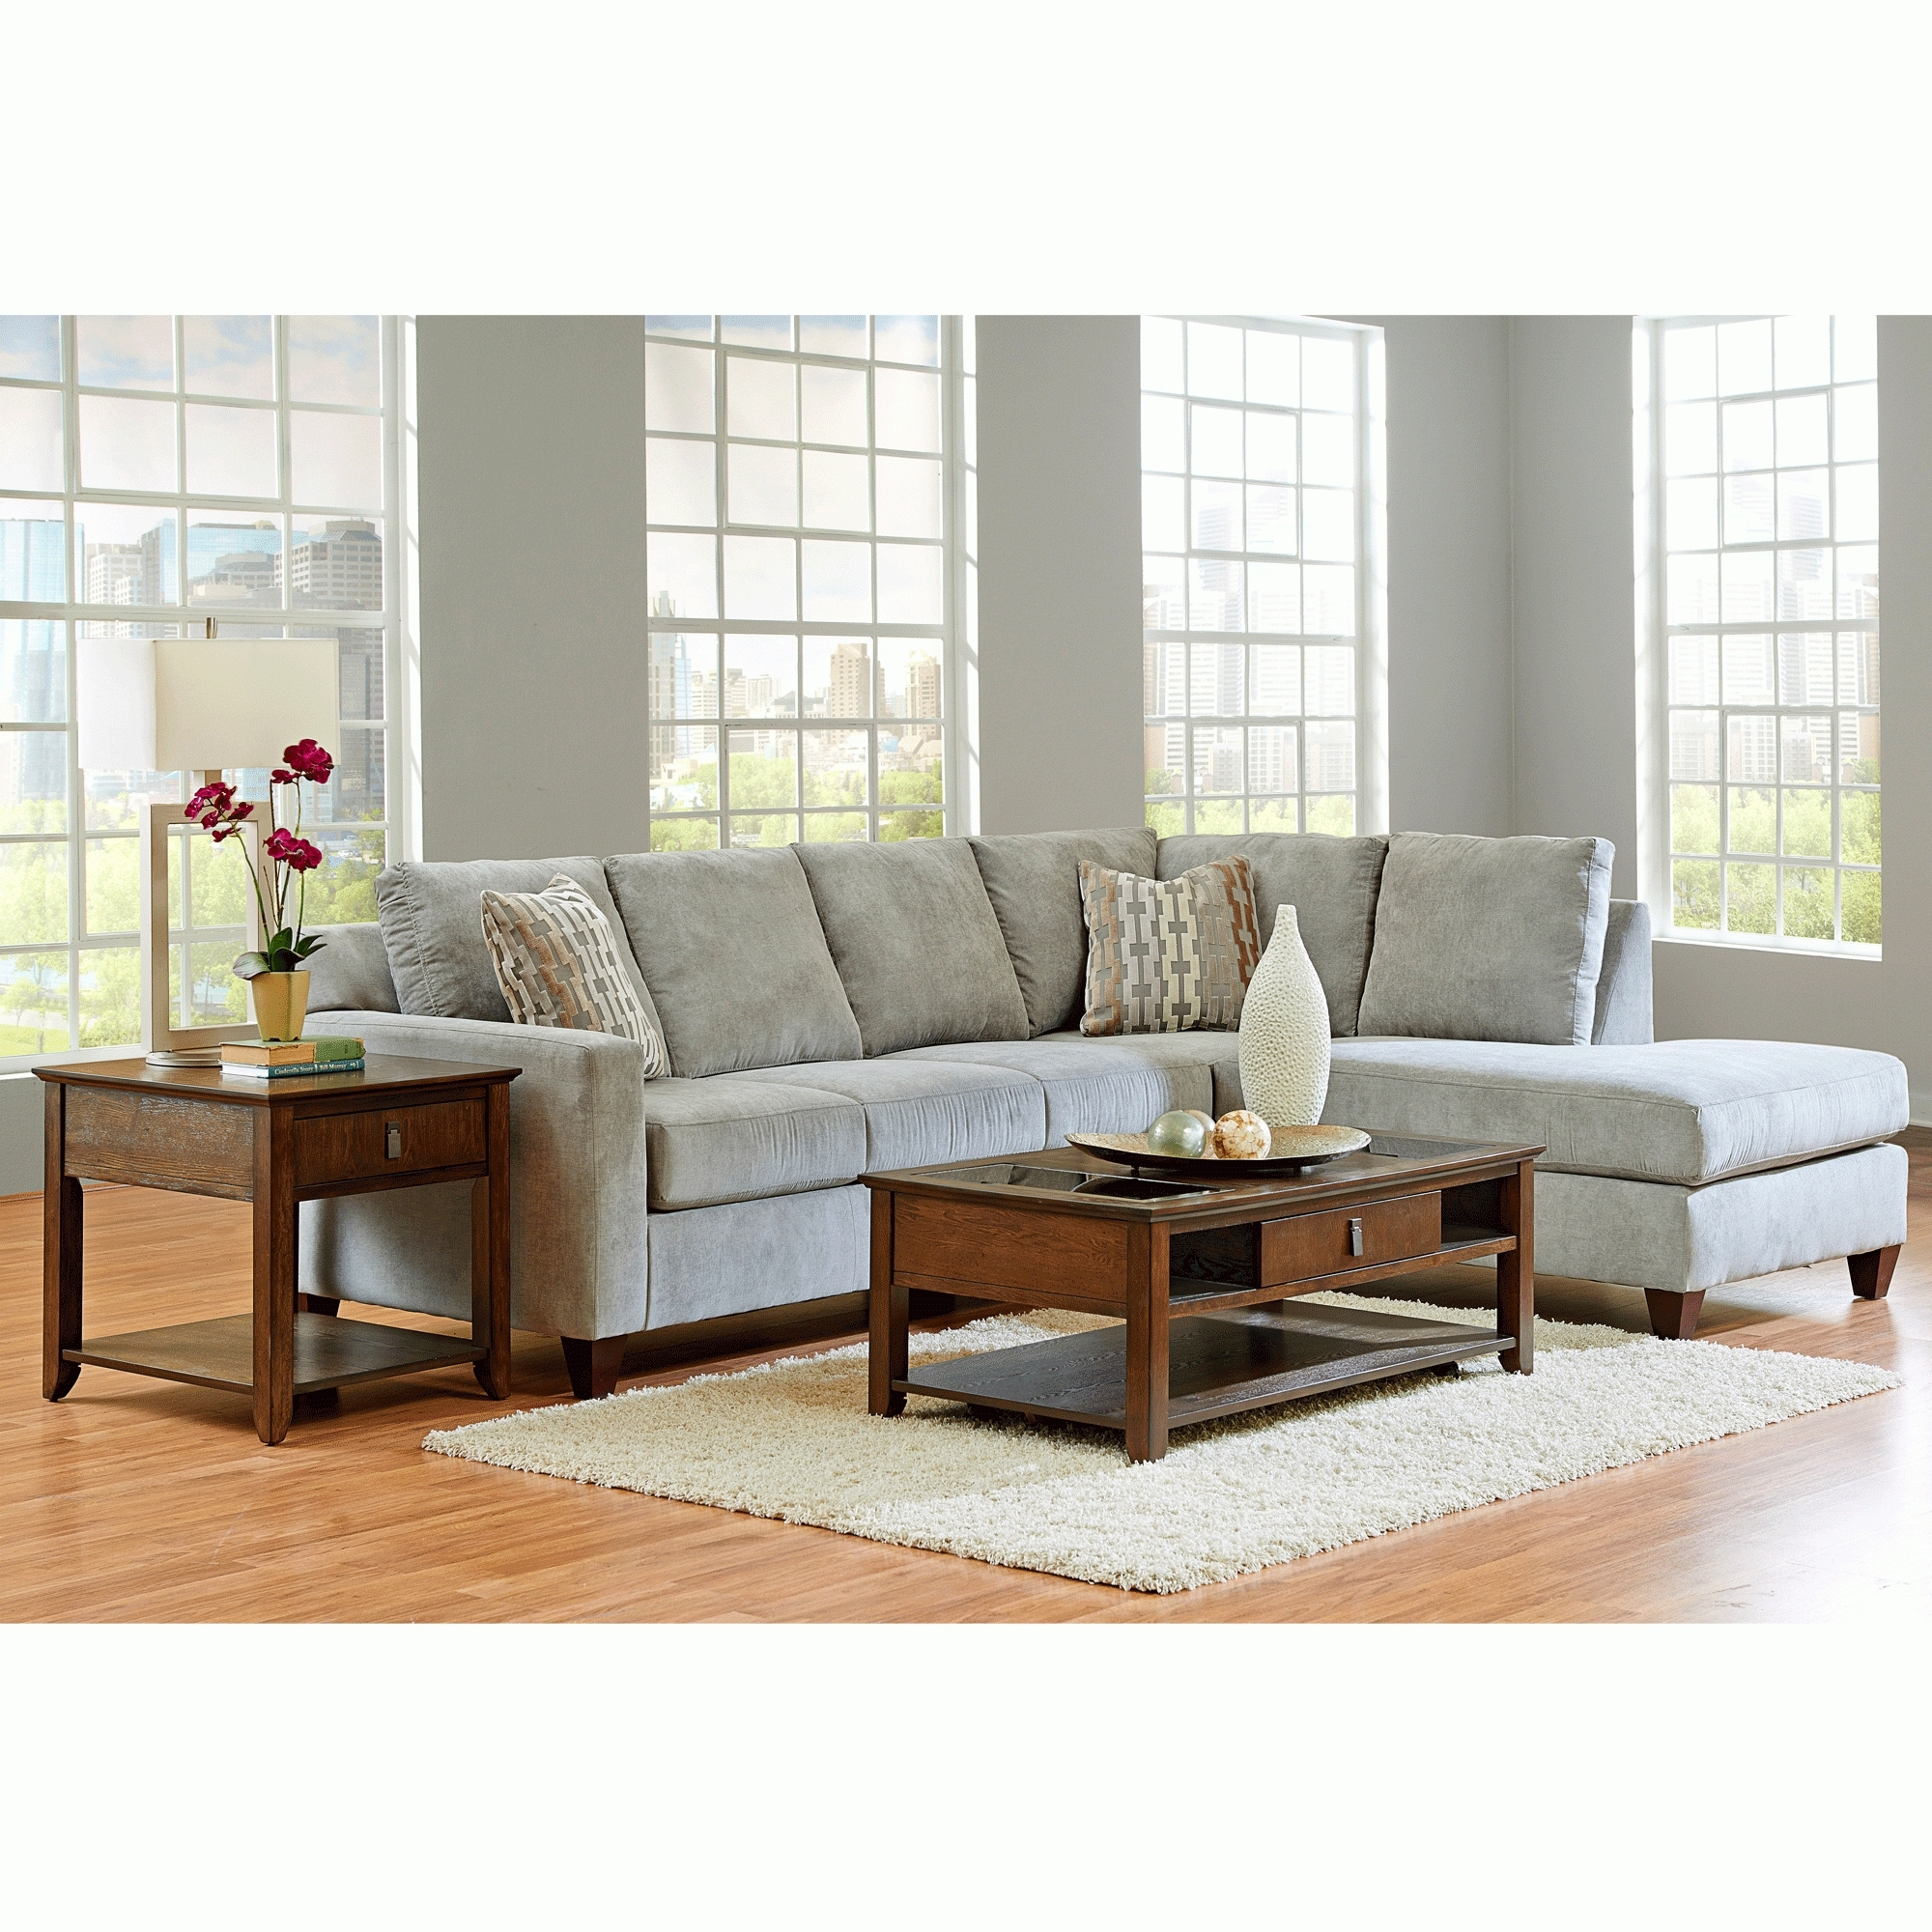 Sectional Sofas | Sectional Couches – Bernie & Phyl's Furniture Inside Nashua Nh Sectional Sofas (View 7 of 10)